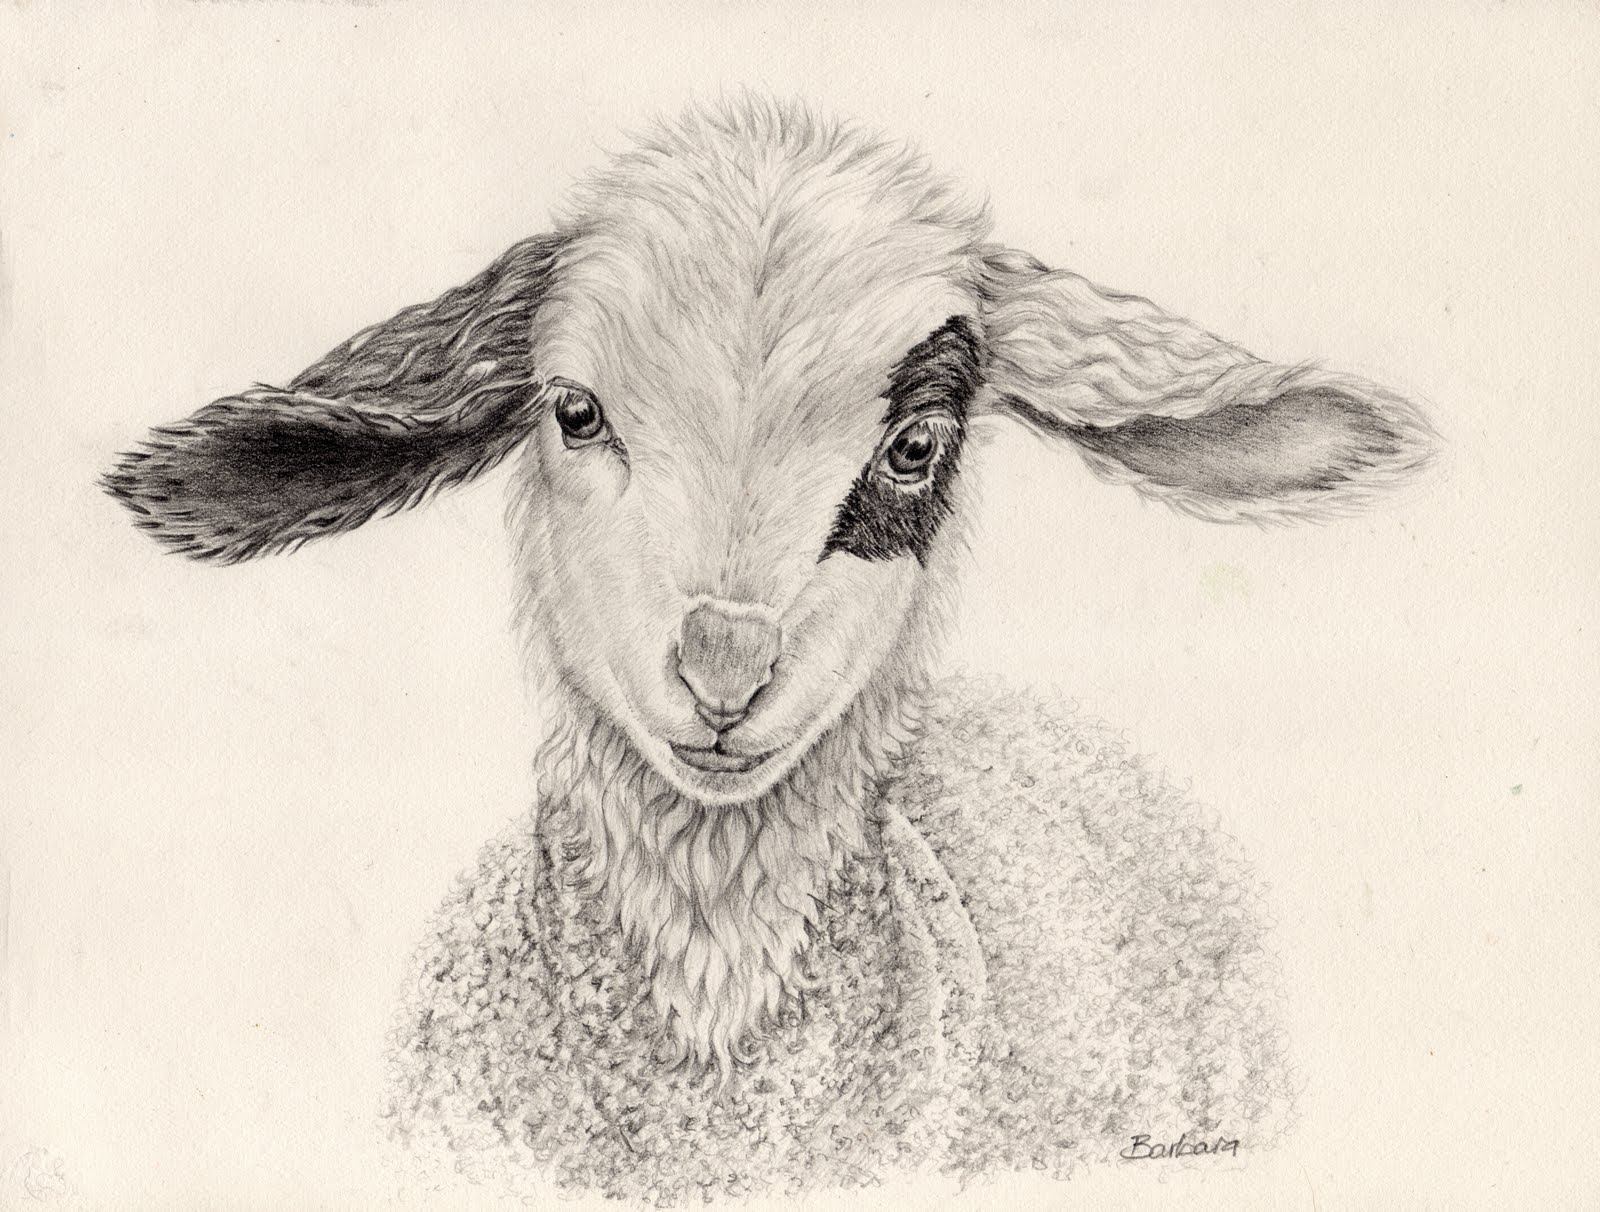 Drawn sheep pencil drawing In Easter  Happy Pinterest